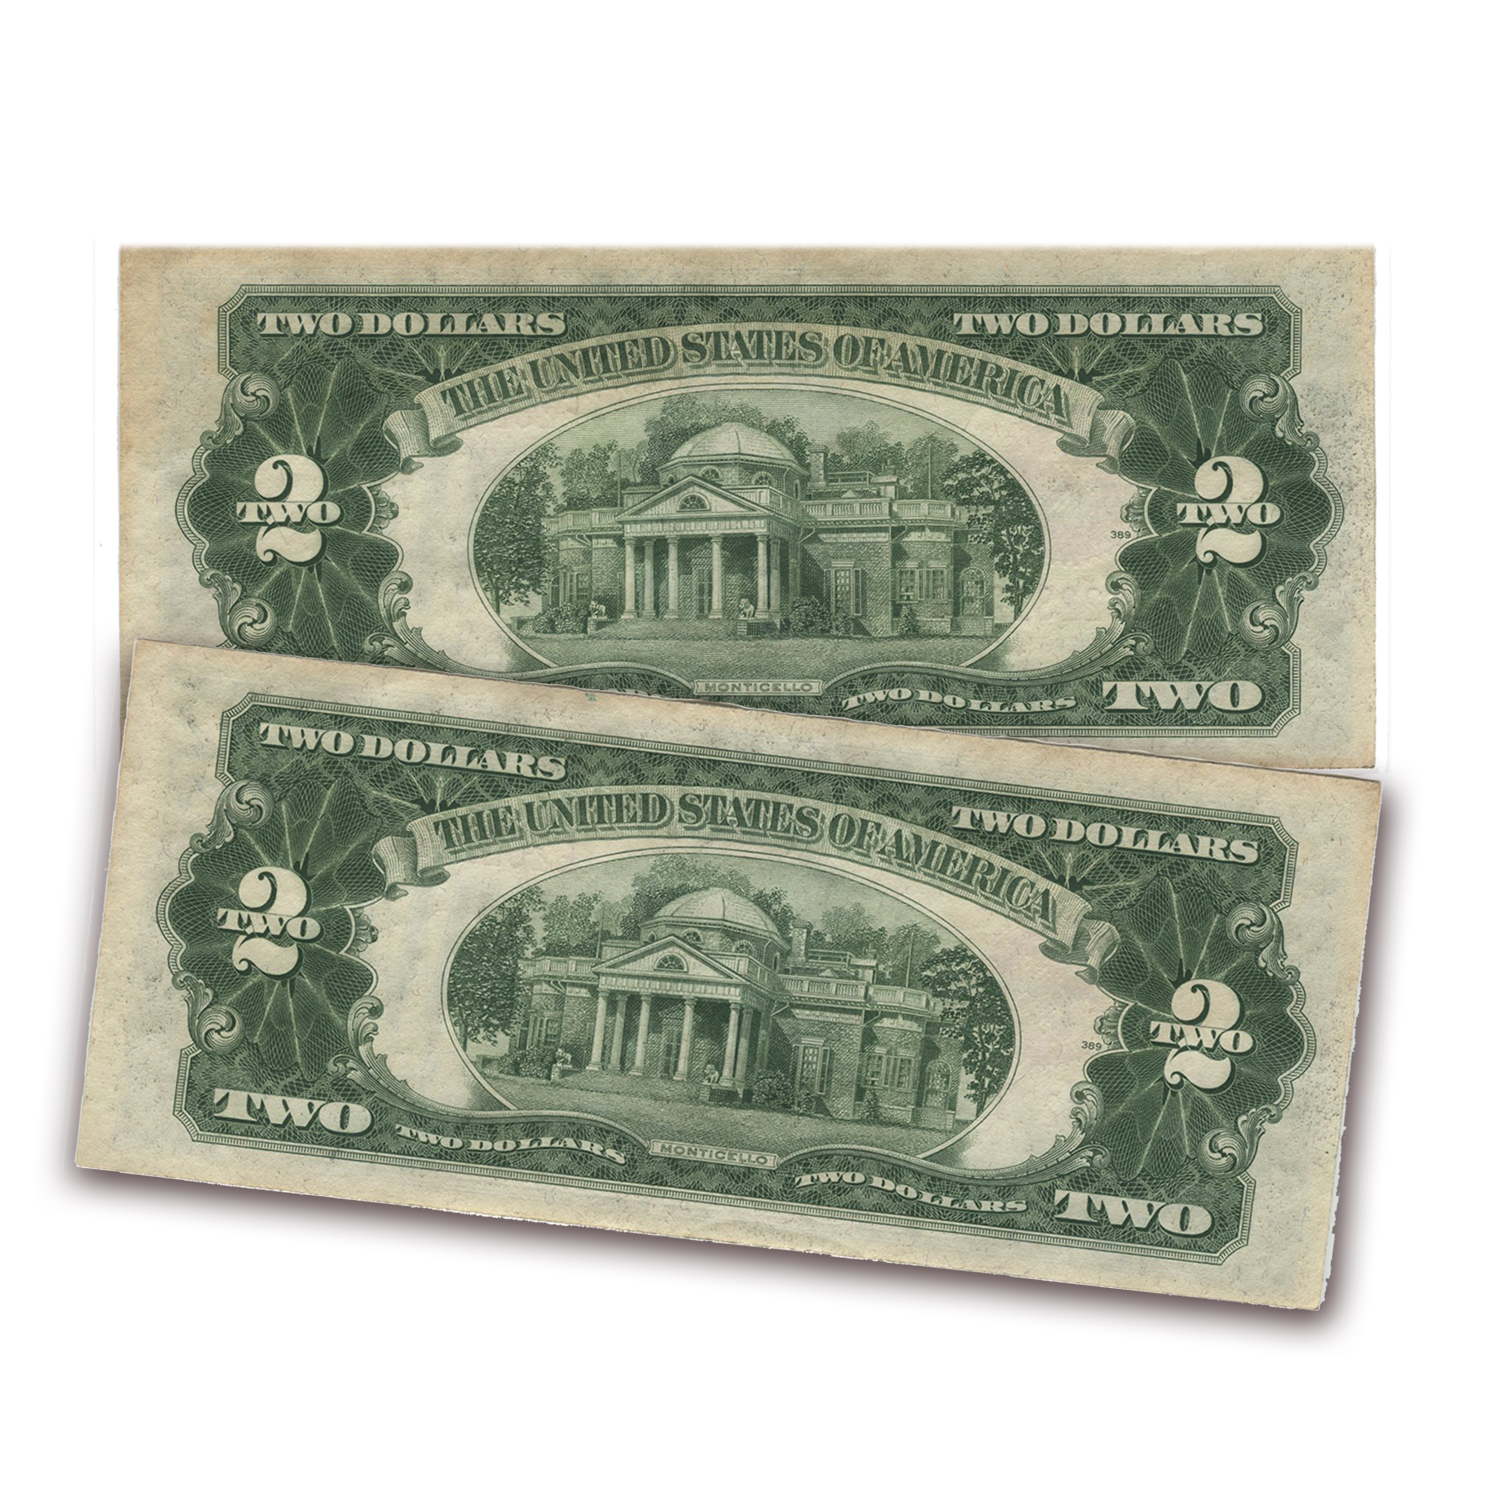 1928-G $2.00 U.S. Note Red Seal AU (2 Consecutive Notes)